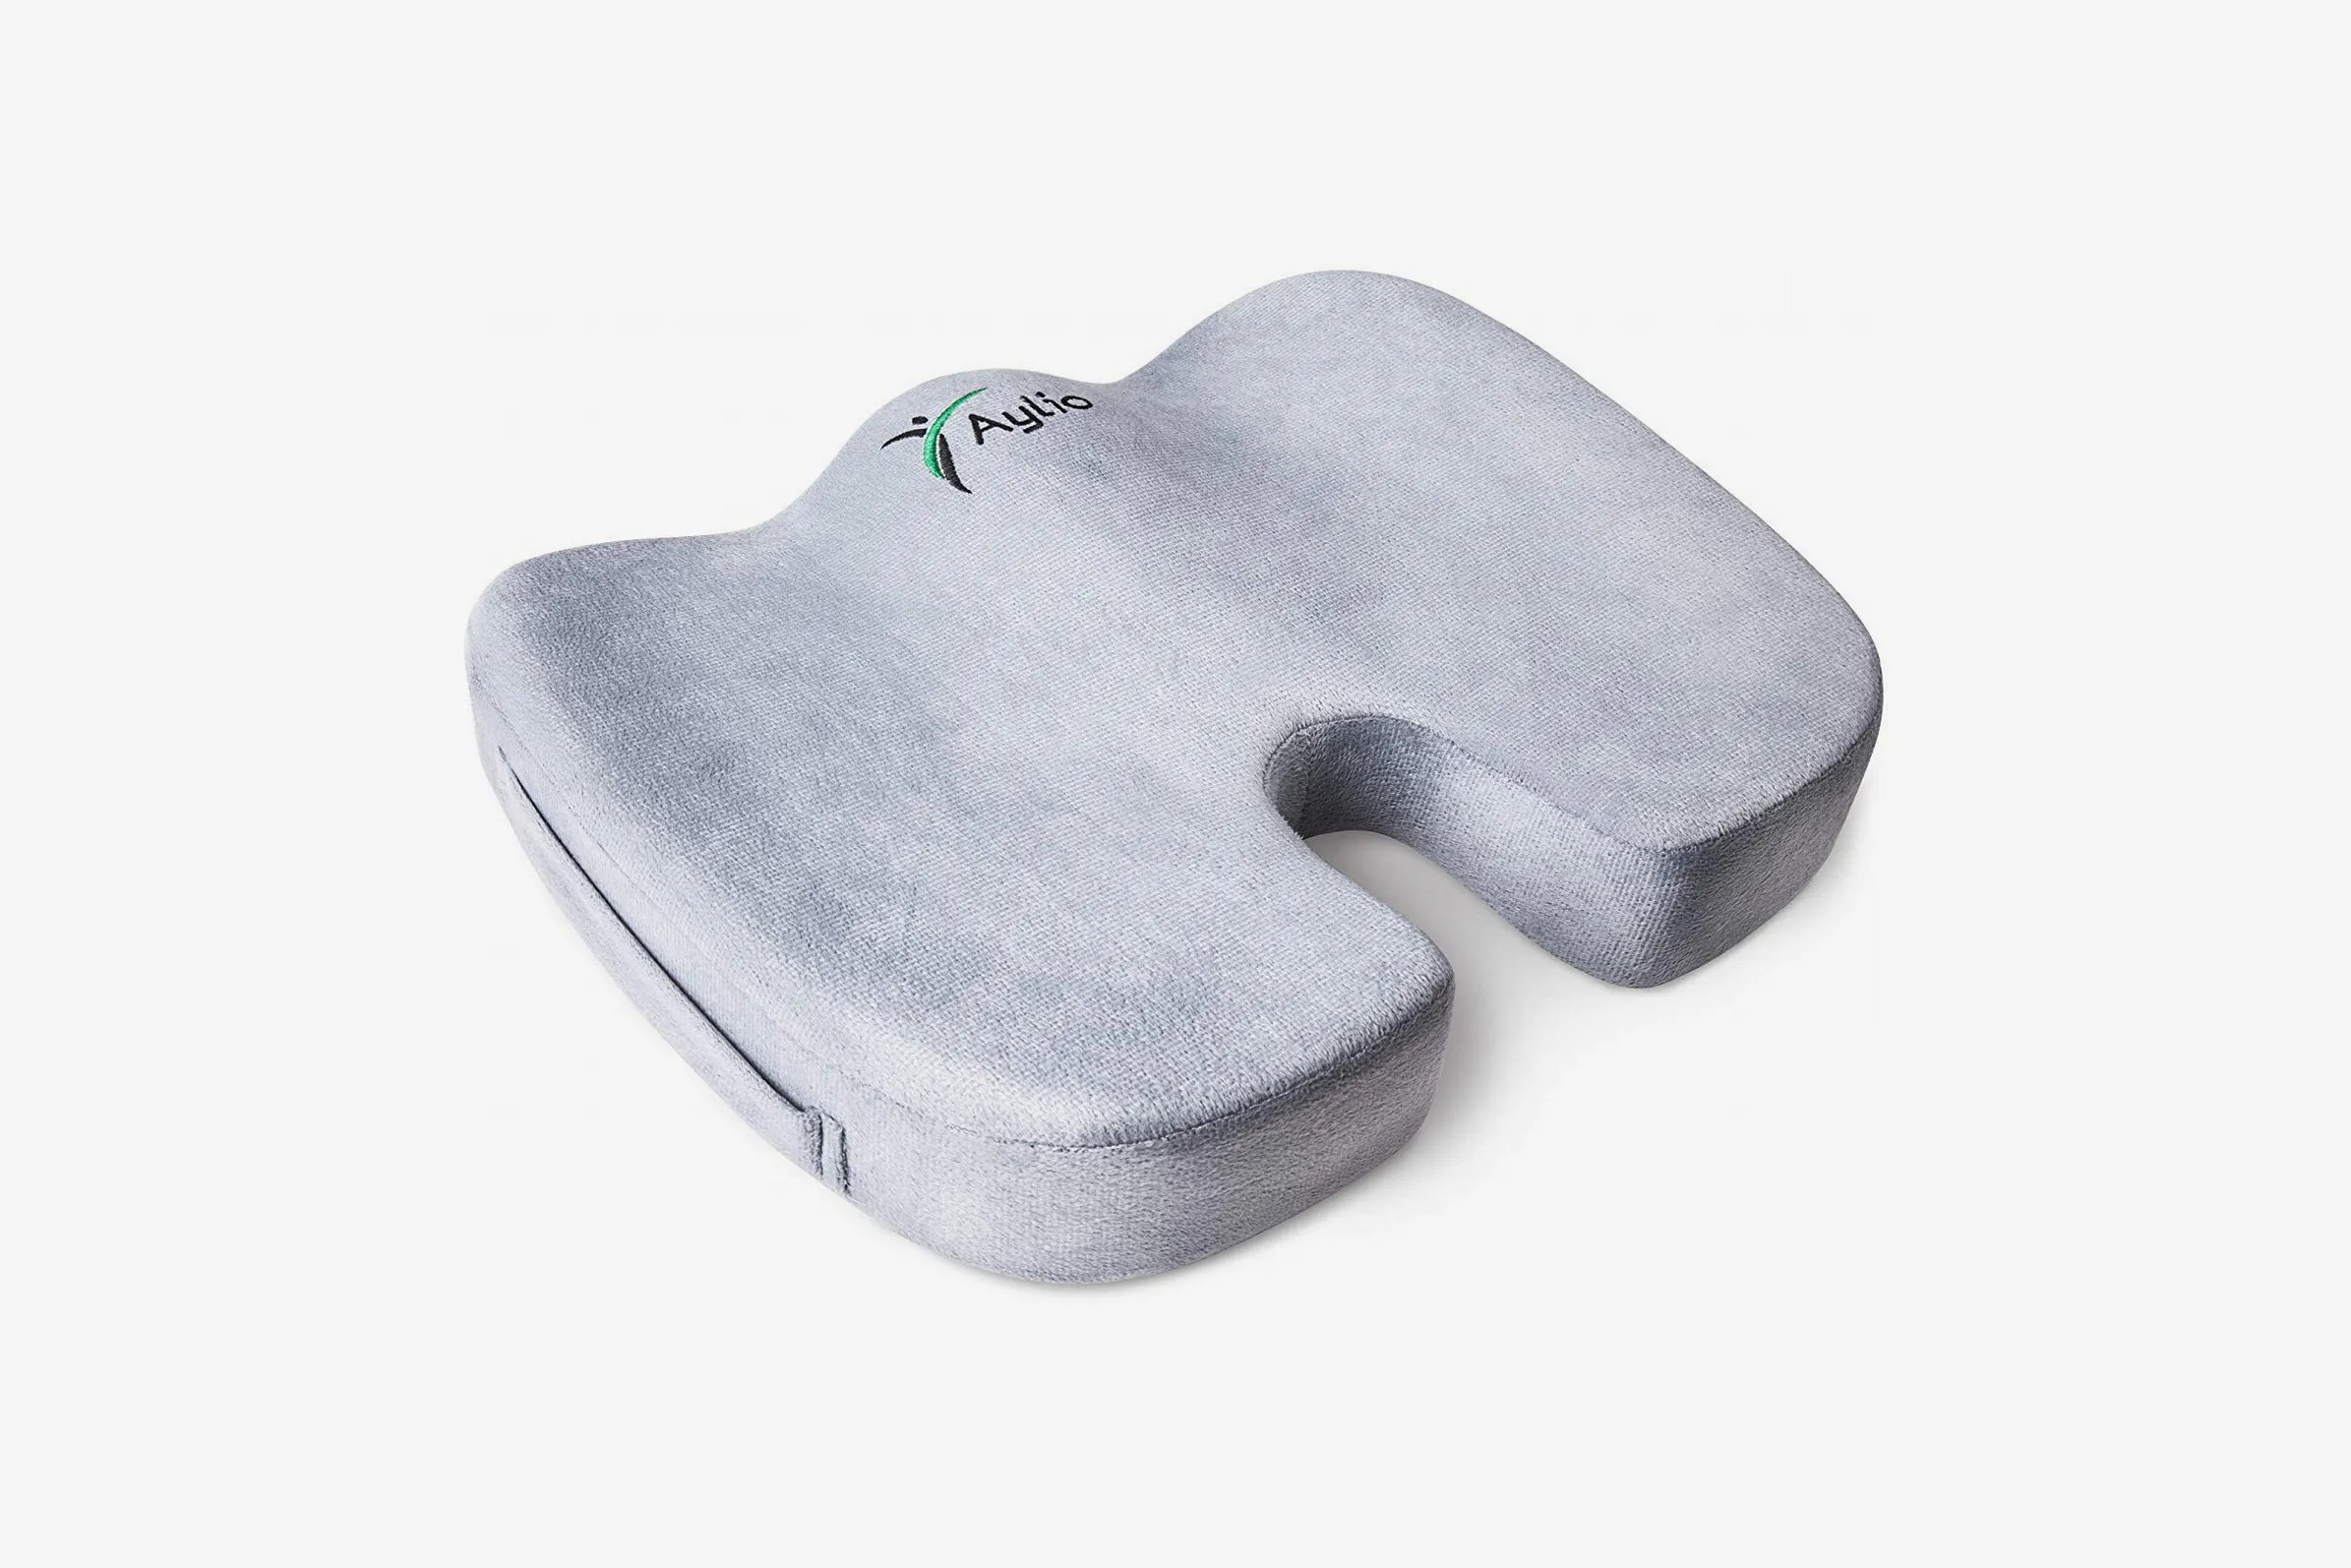 https nymag com strategist article best back support pillows cushions html